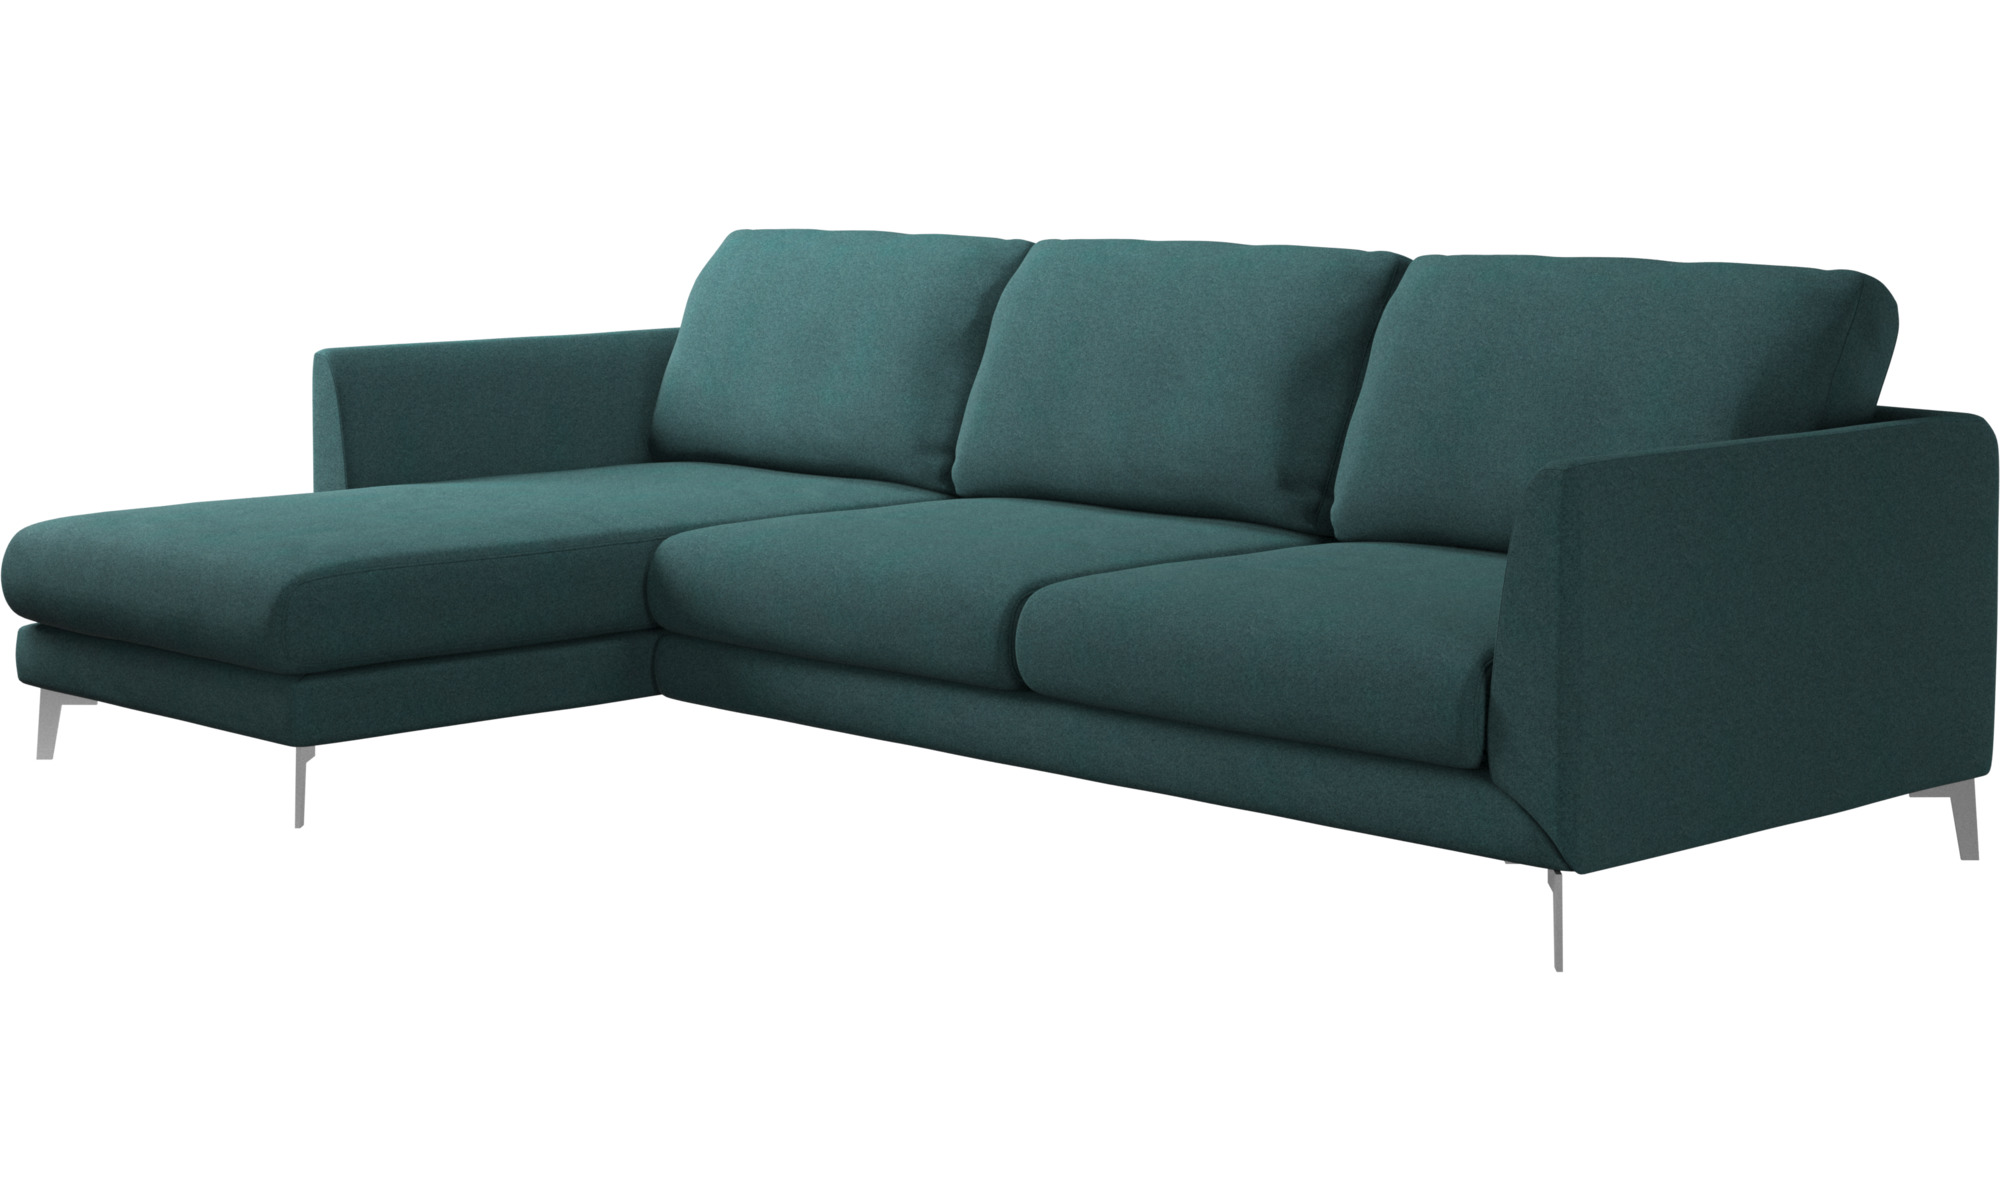 Chaise longue sofas fargo sofa with resting unit boconcept for Oferta sofa cama chaise longue